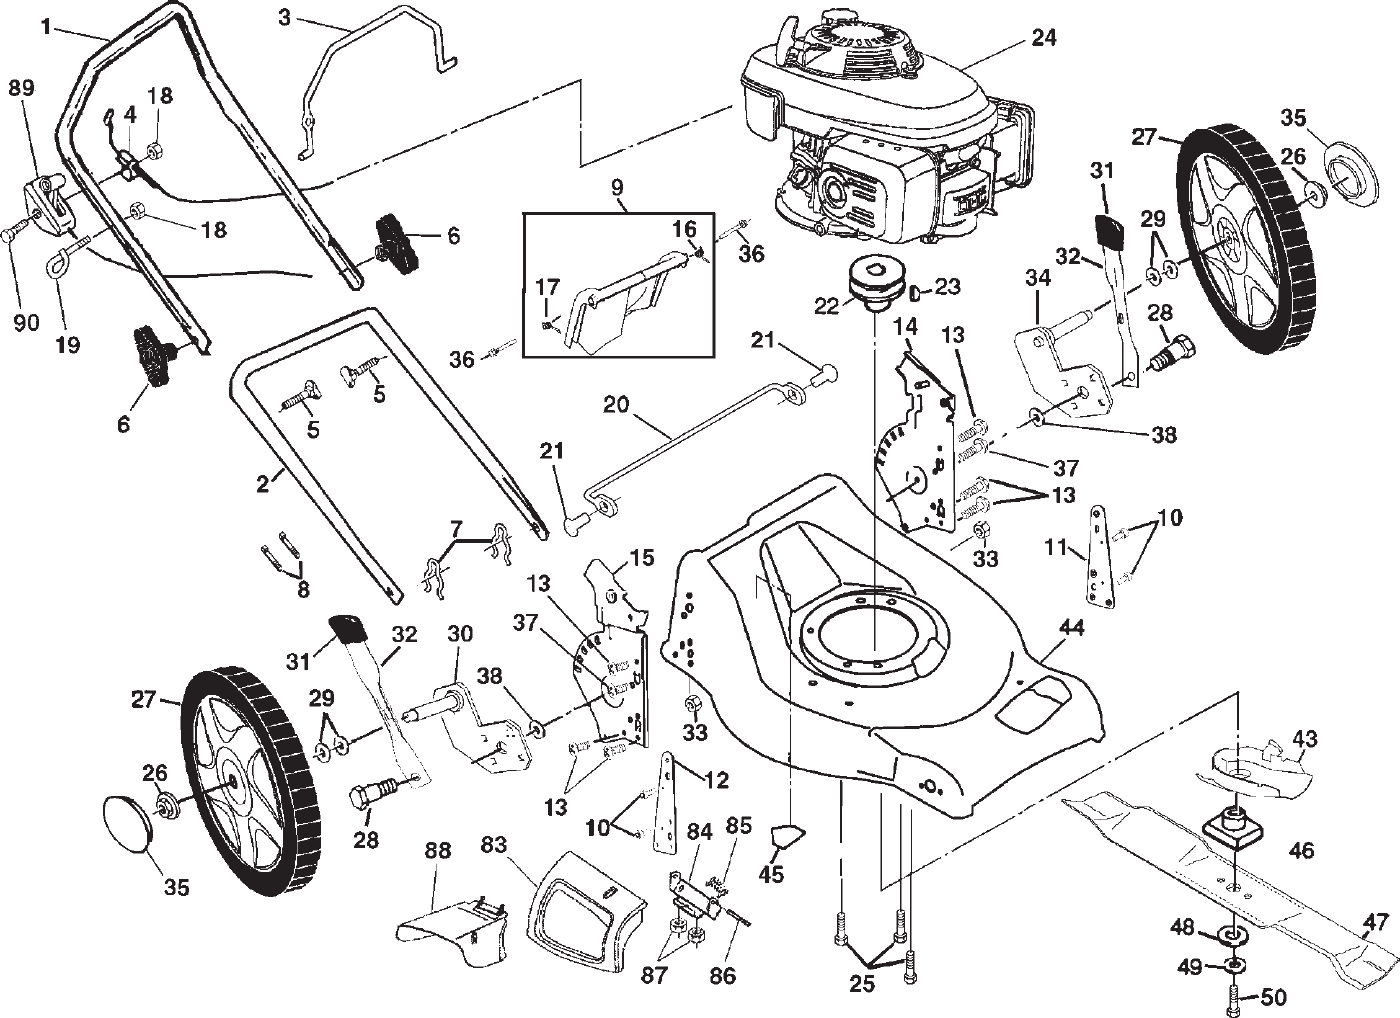 lawn mower ignition switch diagram 85 chevy truck wiring gmc jimmy ford f150 page 2 of electrolux 5553sd (pm5553hw3a) user guide | manualsonline.com